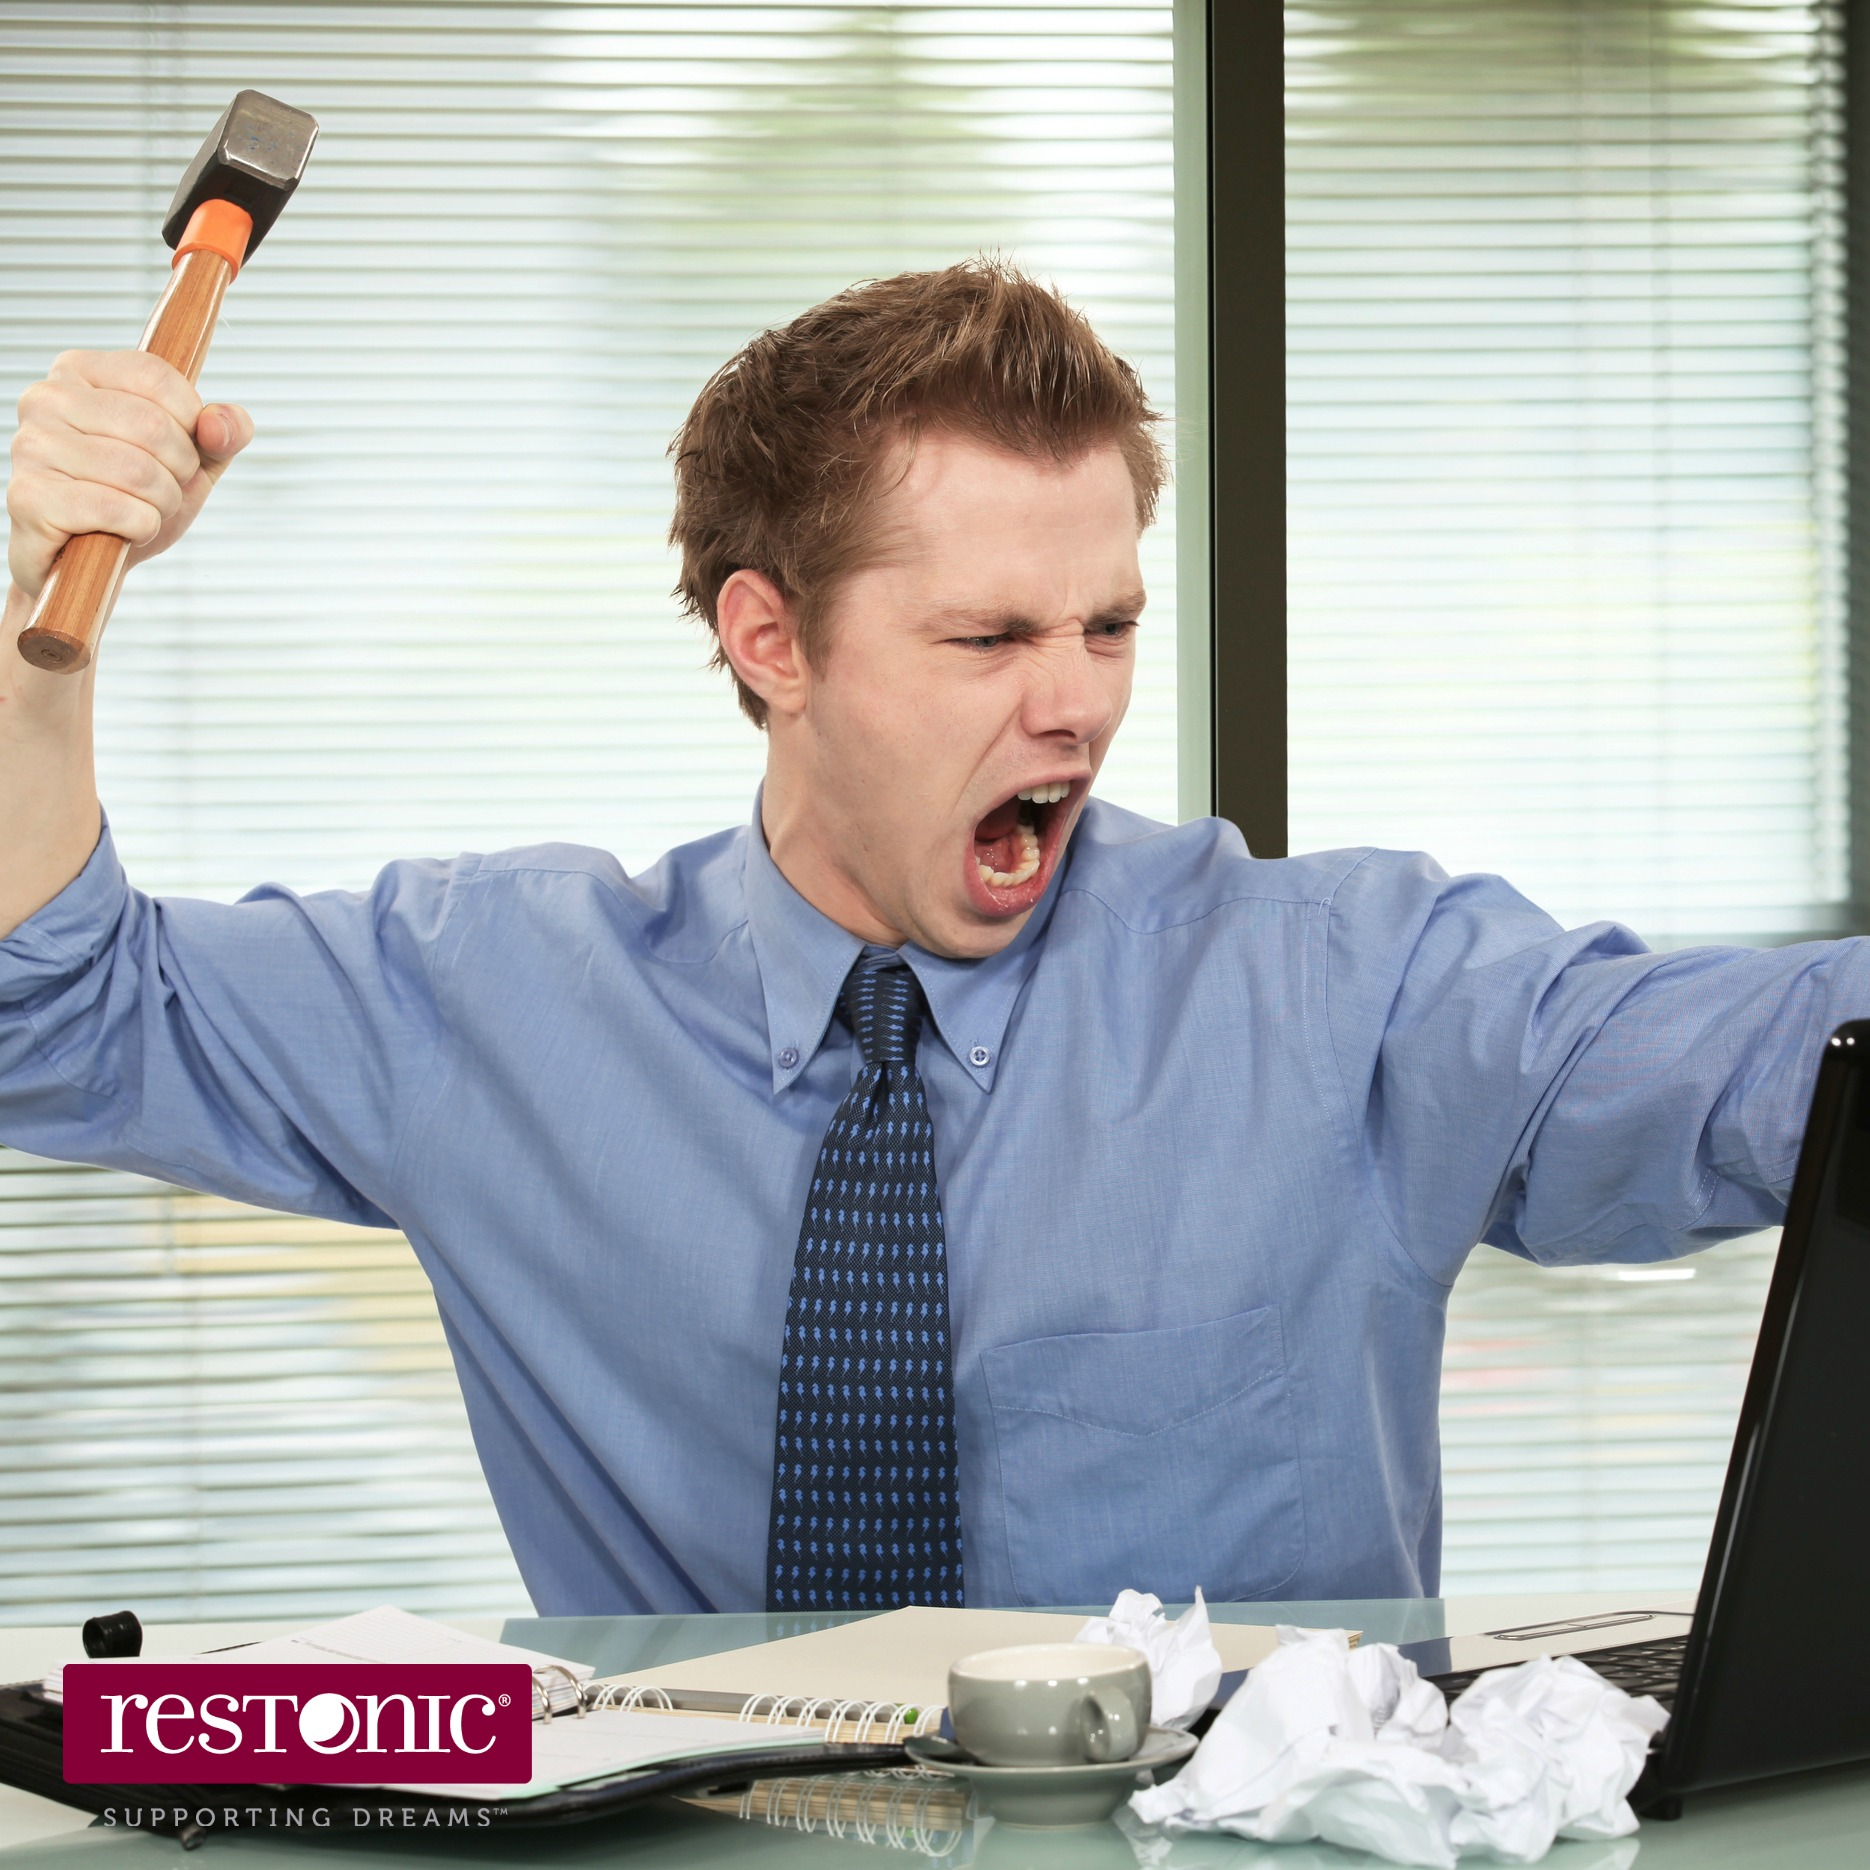 Anxious and sleep-deprived individual who is holding a hammer and screaming at his computer screen.